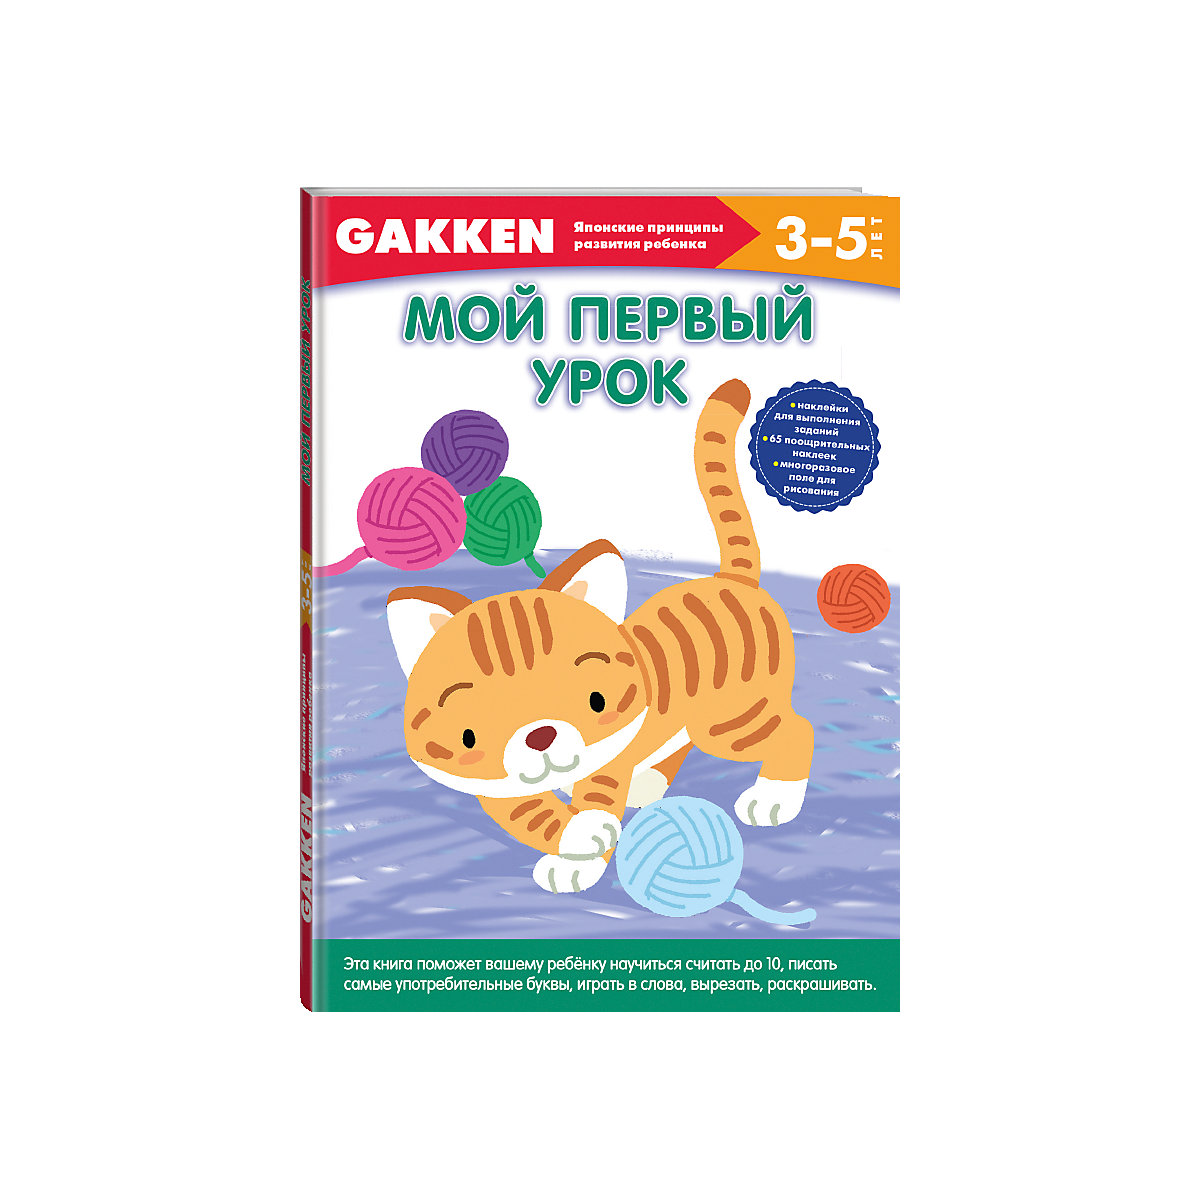 Books EKSMO 4753542 Children Education Encyclopedia Alphabet Dictionary Book For Baby MTpromo